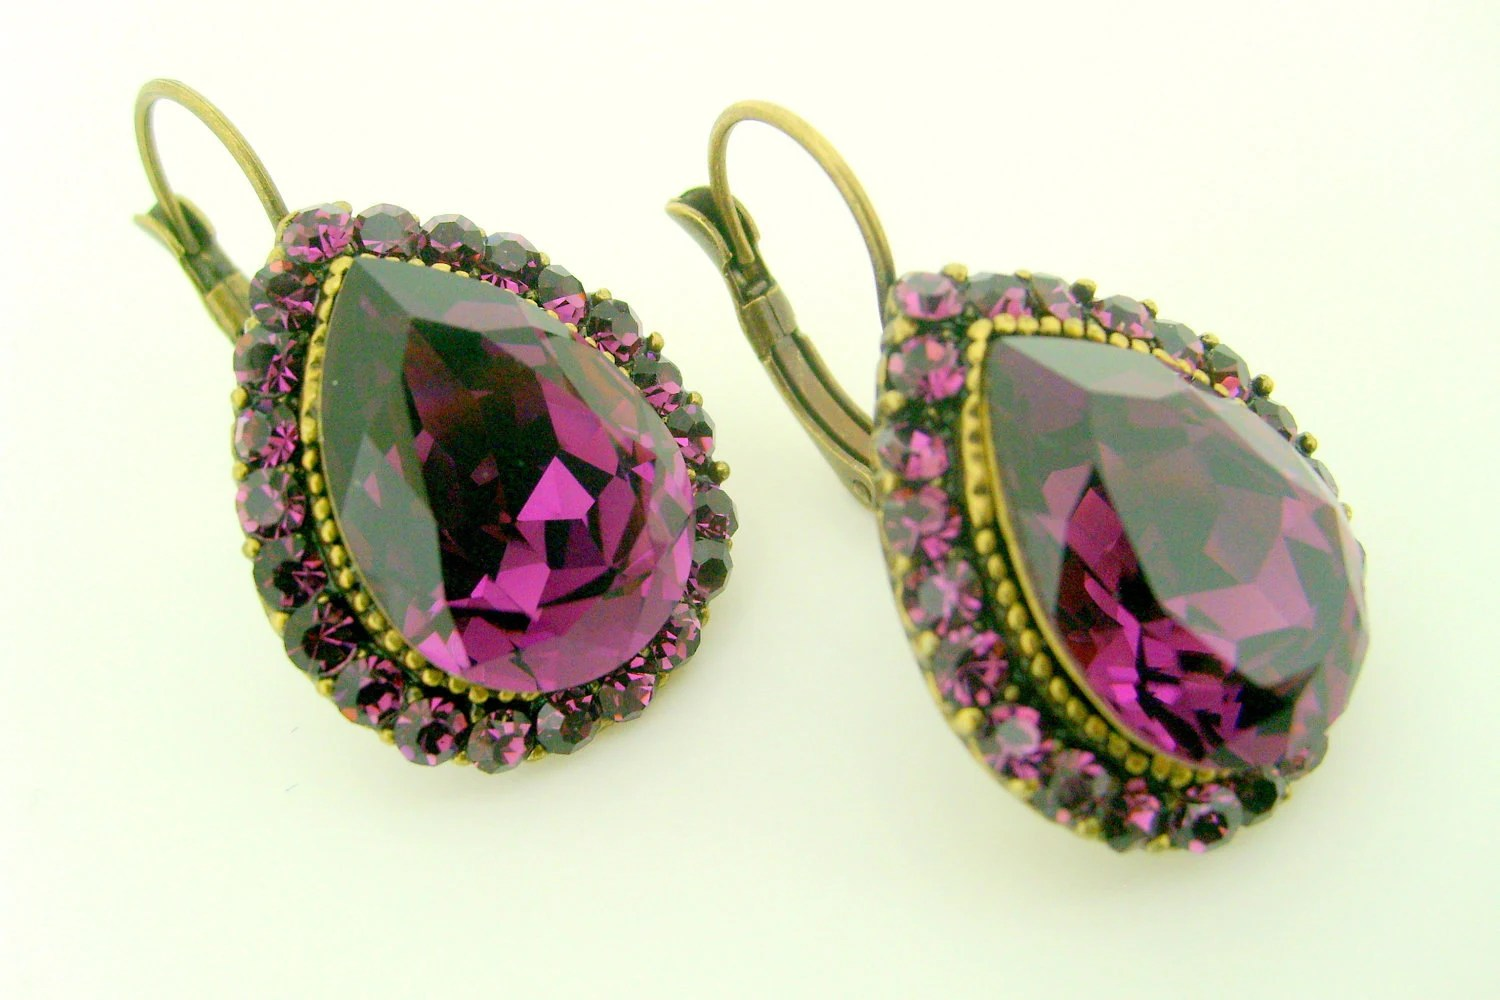 art deco crystal rhinestone earrings purple antique patina brass leverback earwire wedding jewelry bridal jewelry bridesmaid gift